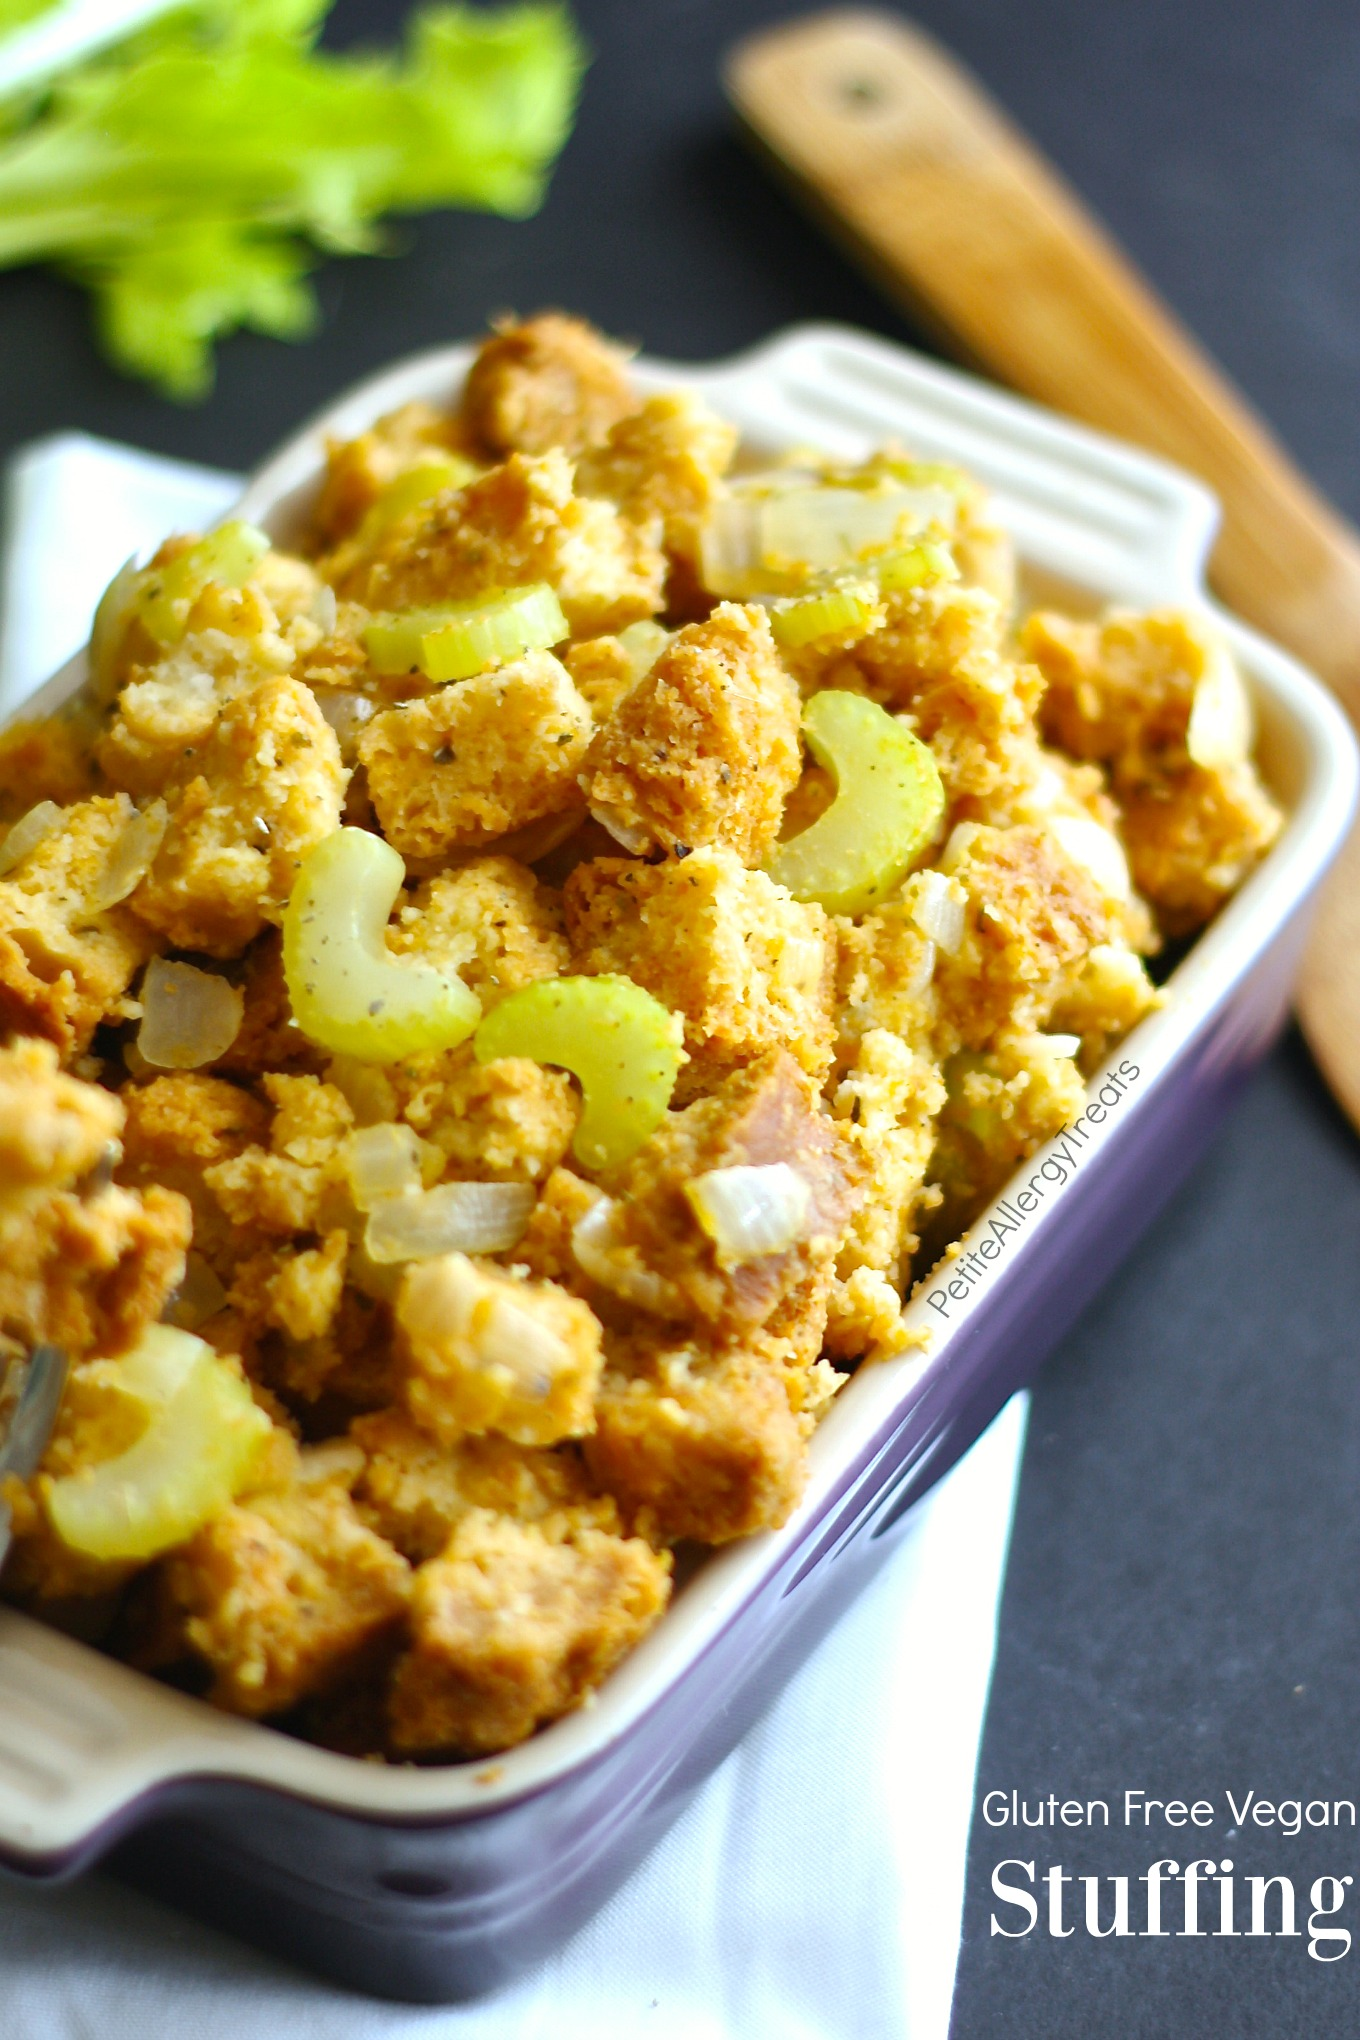 Gluten Free Stuffing- Easy traditional stuffing that's also Vegan. PetiteAllergyTreats. #thanksgiving